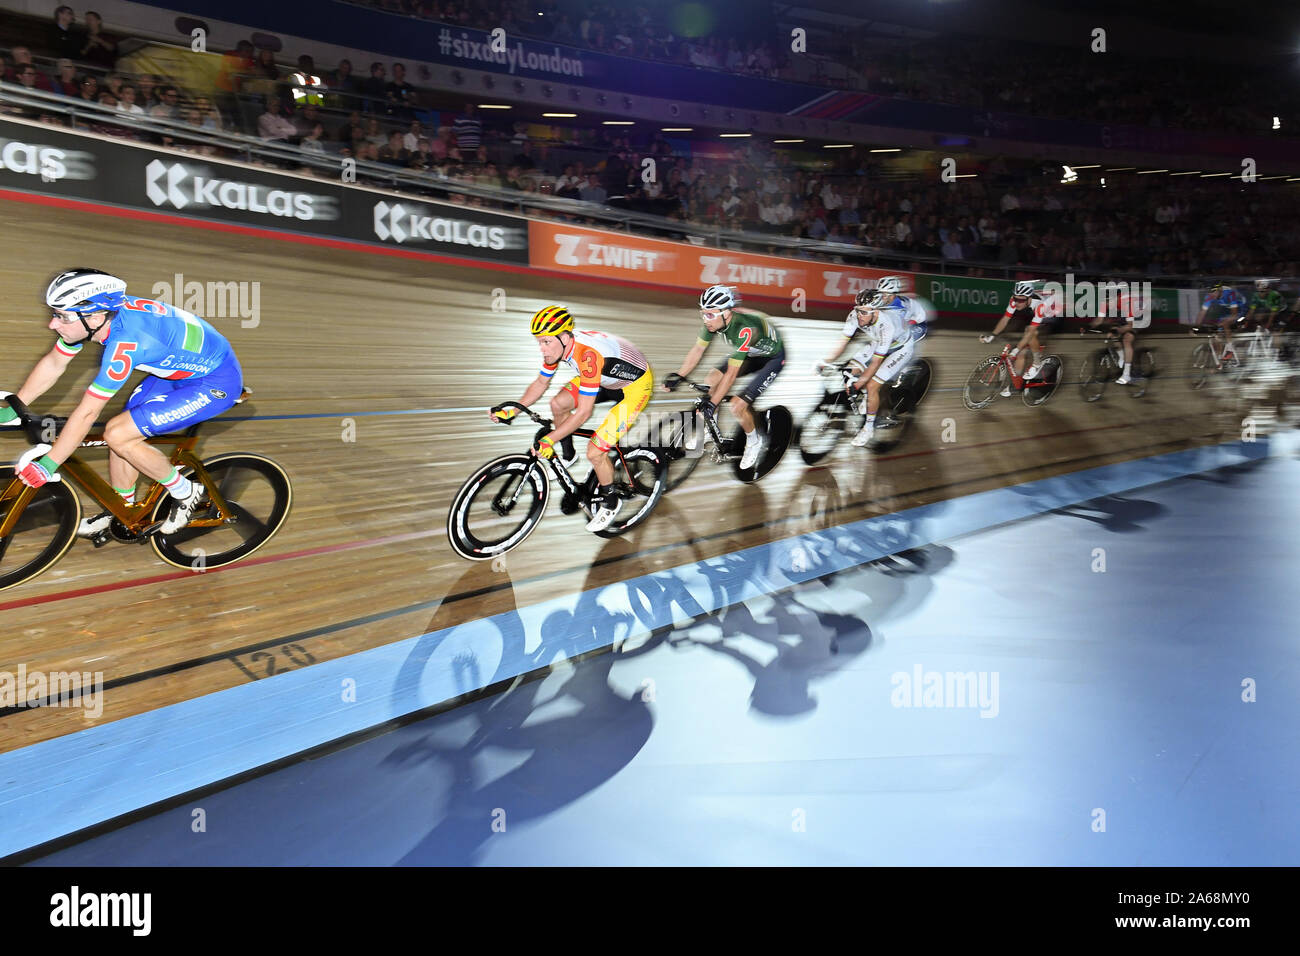 LONDON, UNITED KINGDOM. 24th Oct, 2019. Wim Stroetinga of Netherlands competes in ManÕs Elimination race during Day 3 of Six Day London 2019 at Lee Valley VeloPark on Thursday, October 24, 2019 in LONDON, UNITED KINGDOM. Credit: Taka G Wu/Alamy Live News Stock Photo